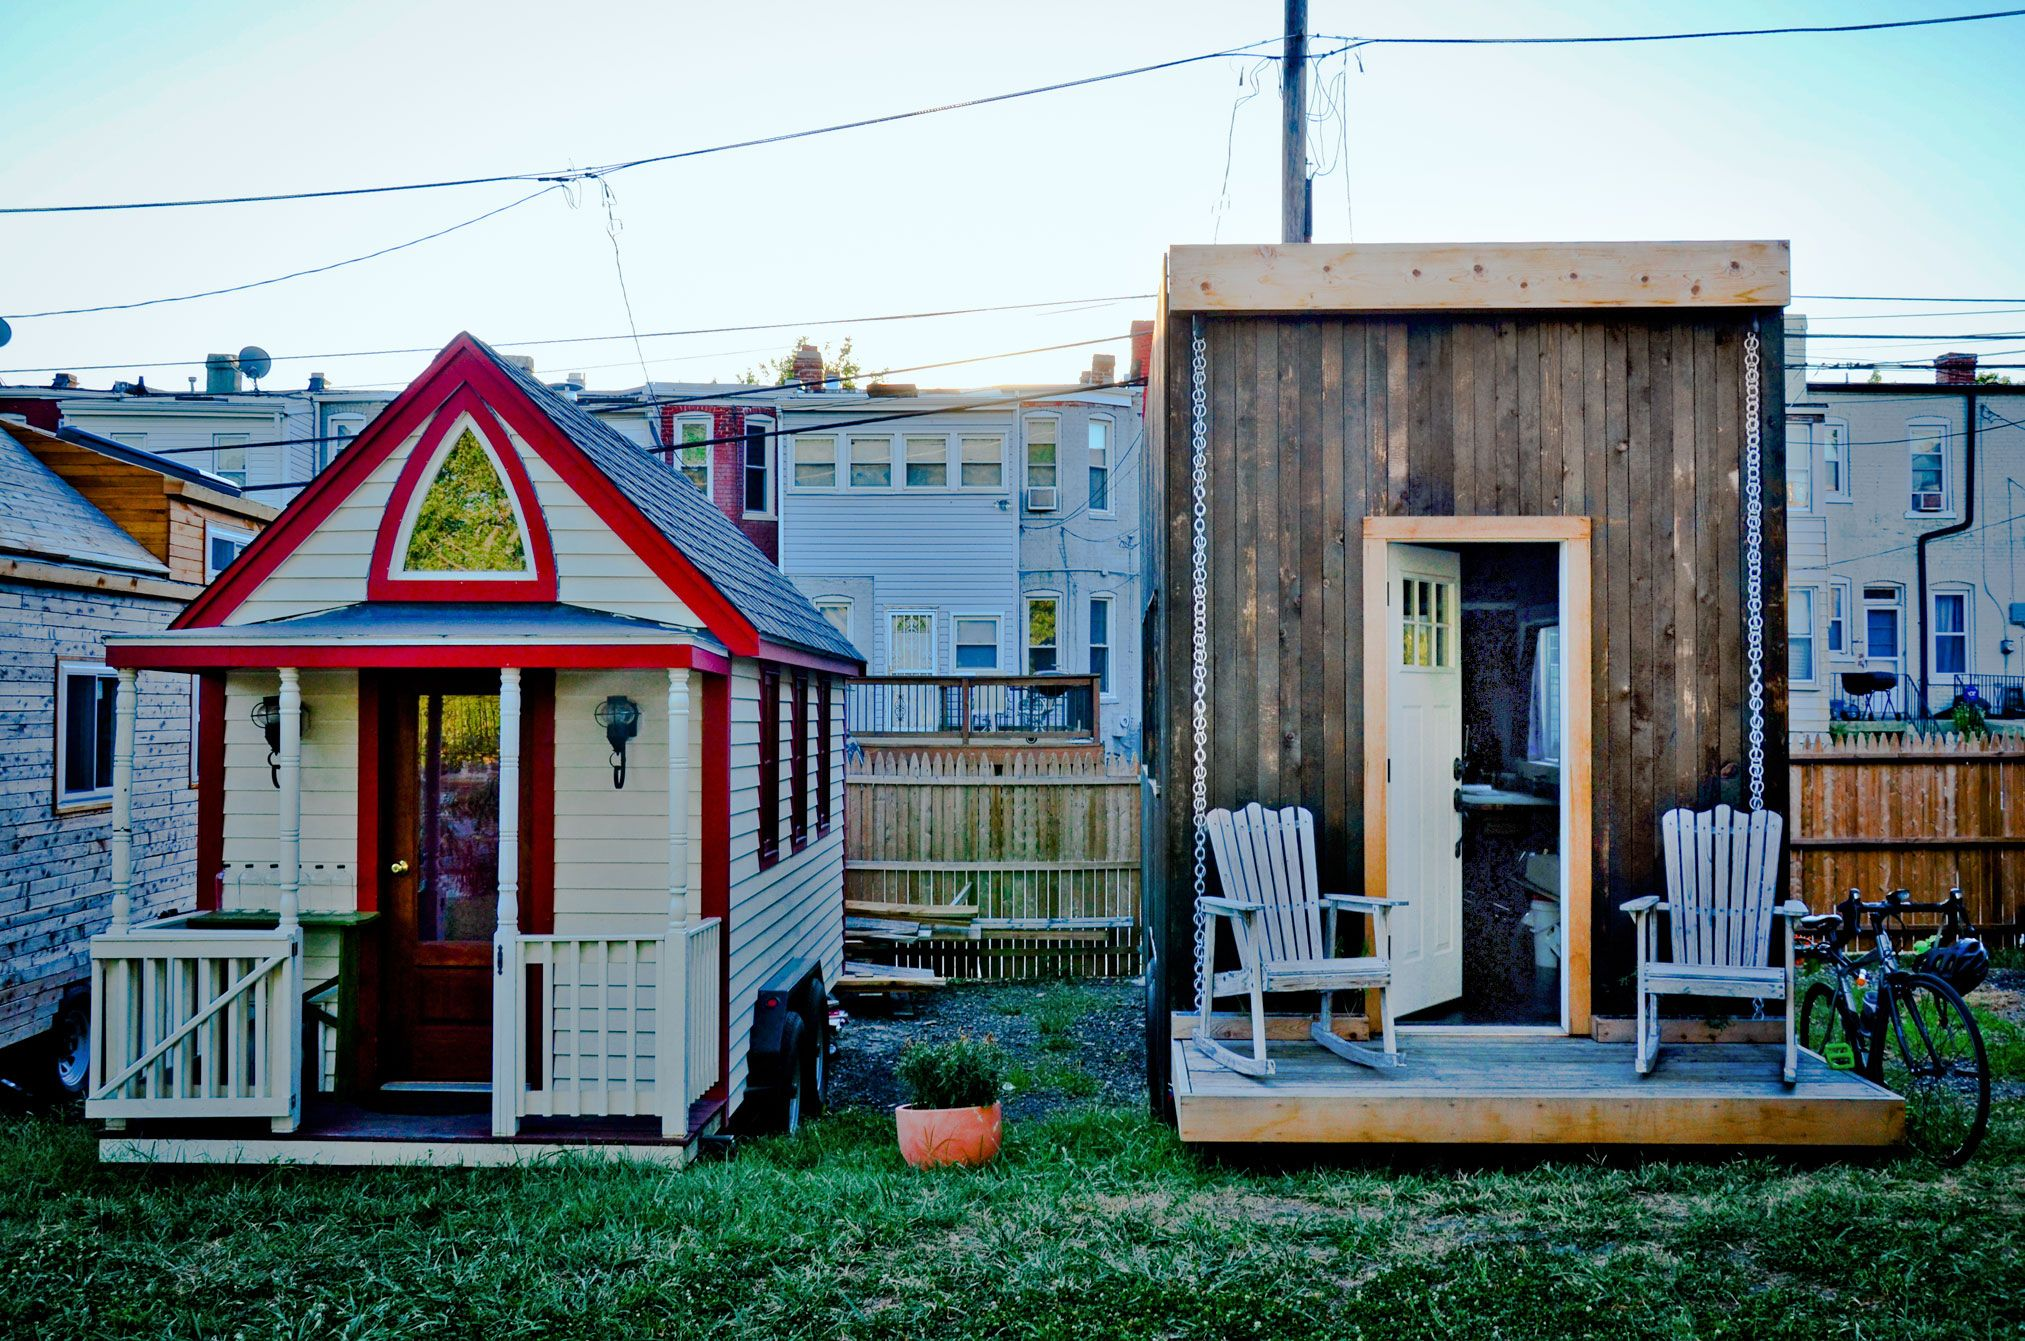 71 Best Tiny Houses 2018 - Small House Pictures & Plans